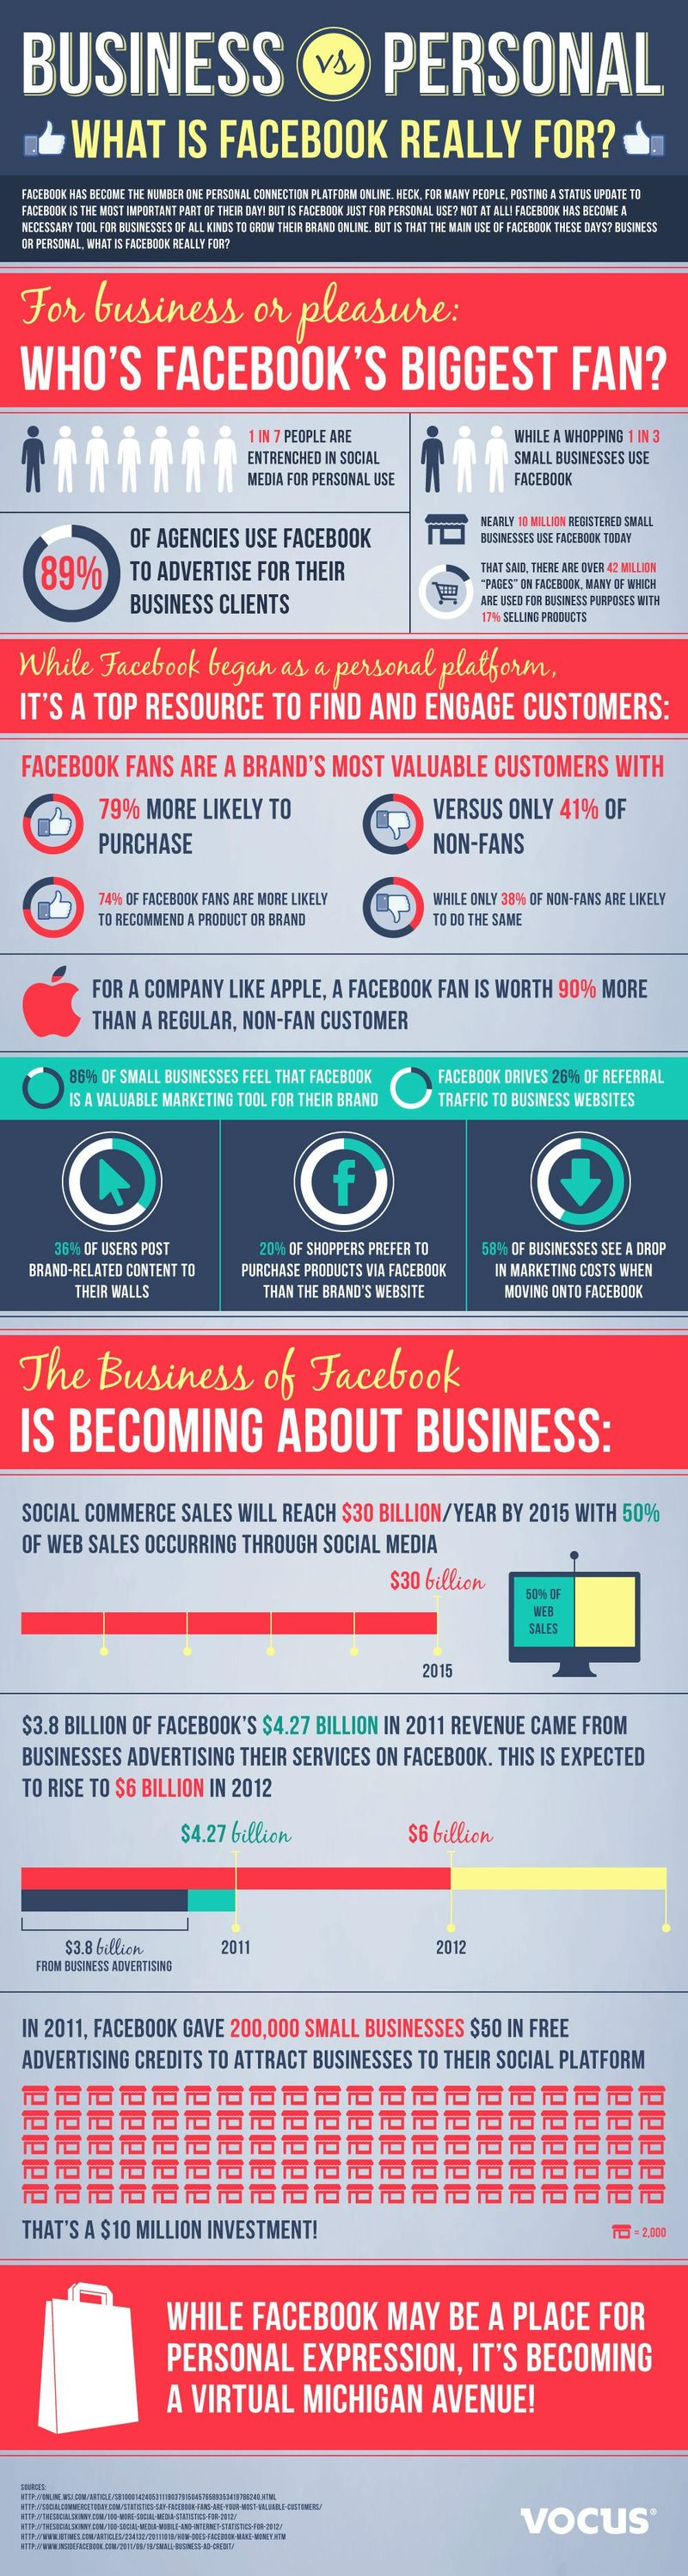 Business vs Personal - Just What Is Faebook For